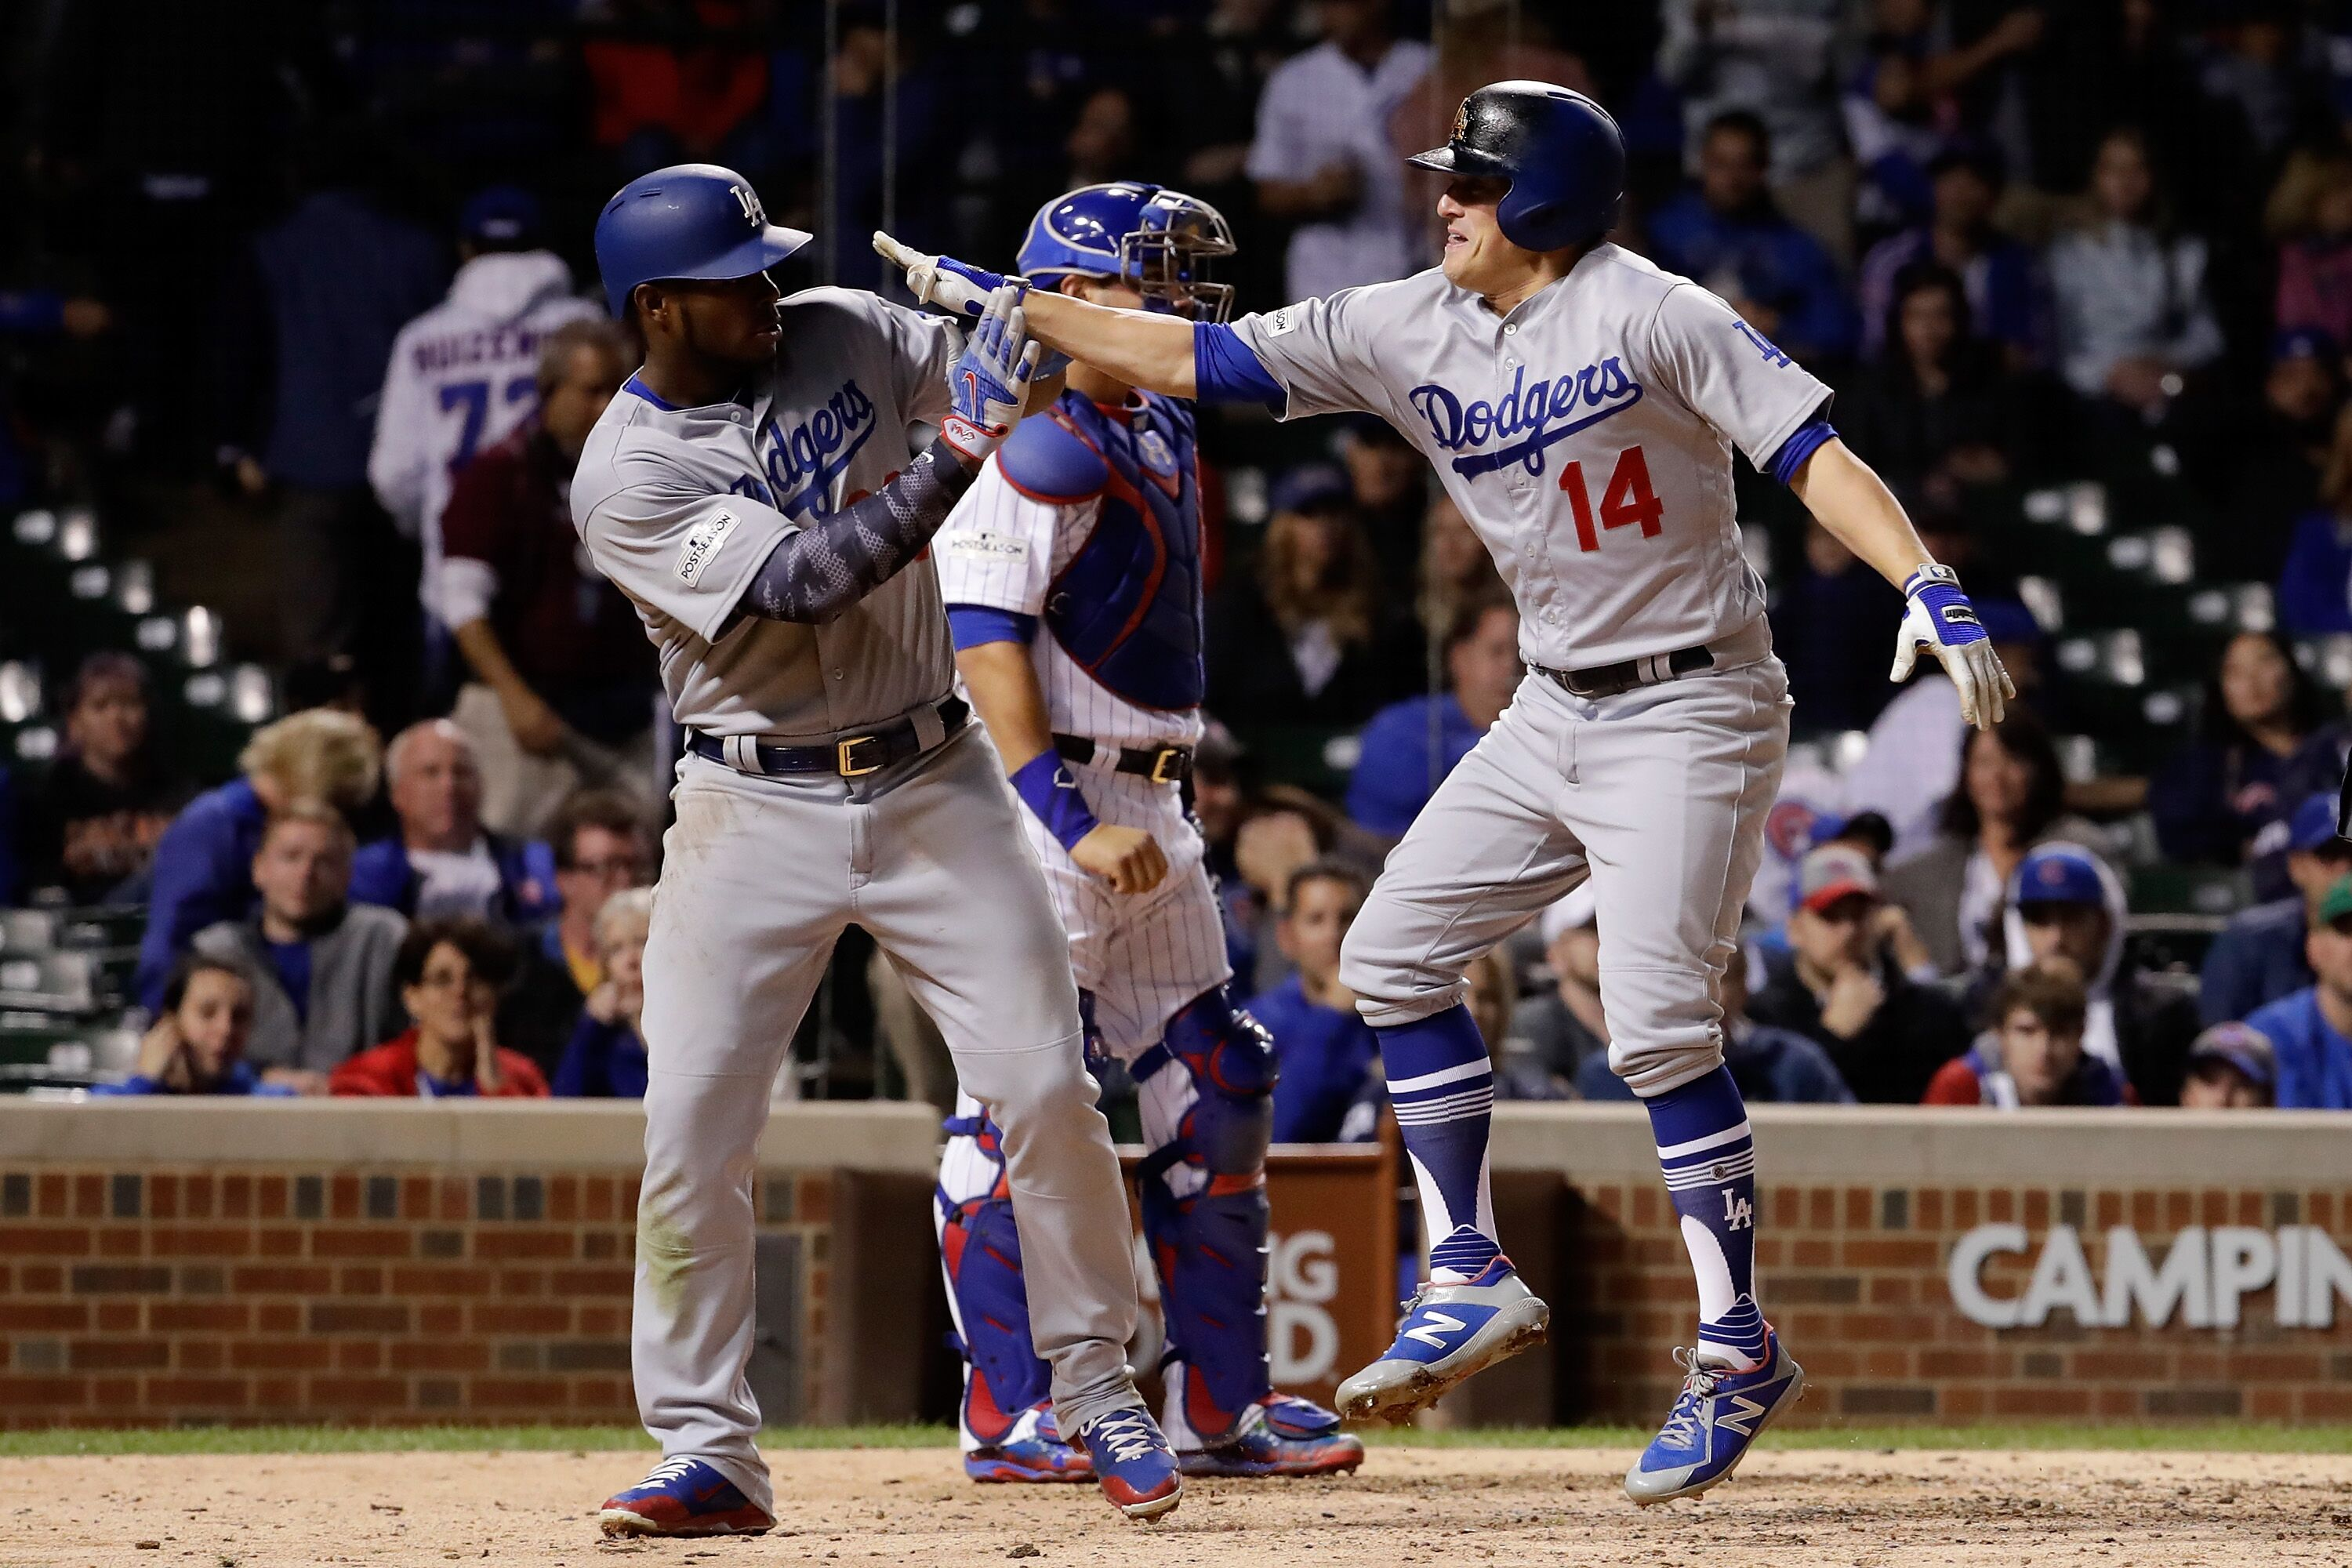 863284884-league-championship-series-los-angeles-dodgers-v-chicago-cubs-game-five.jpg